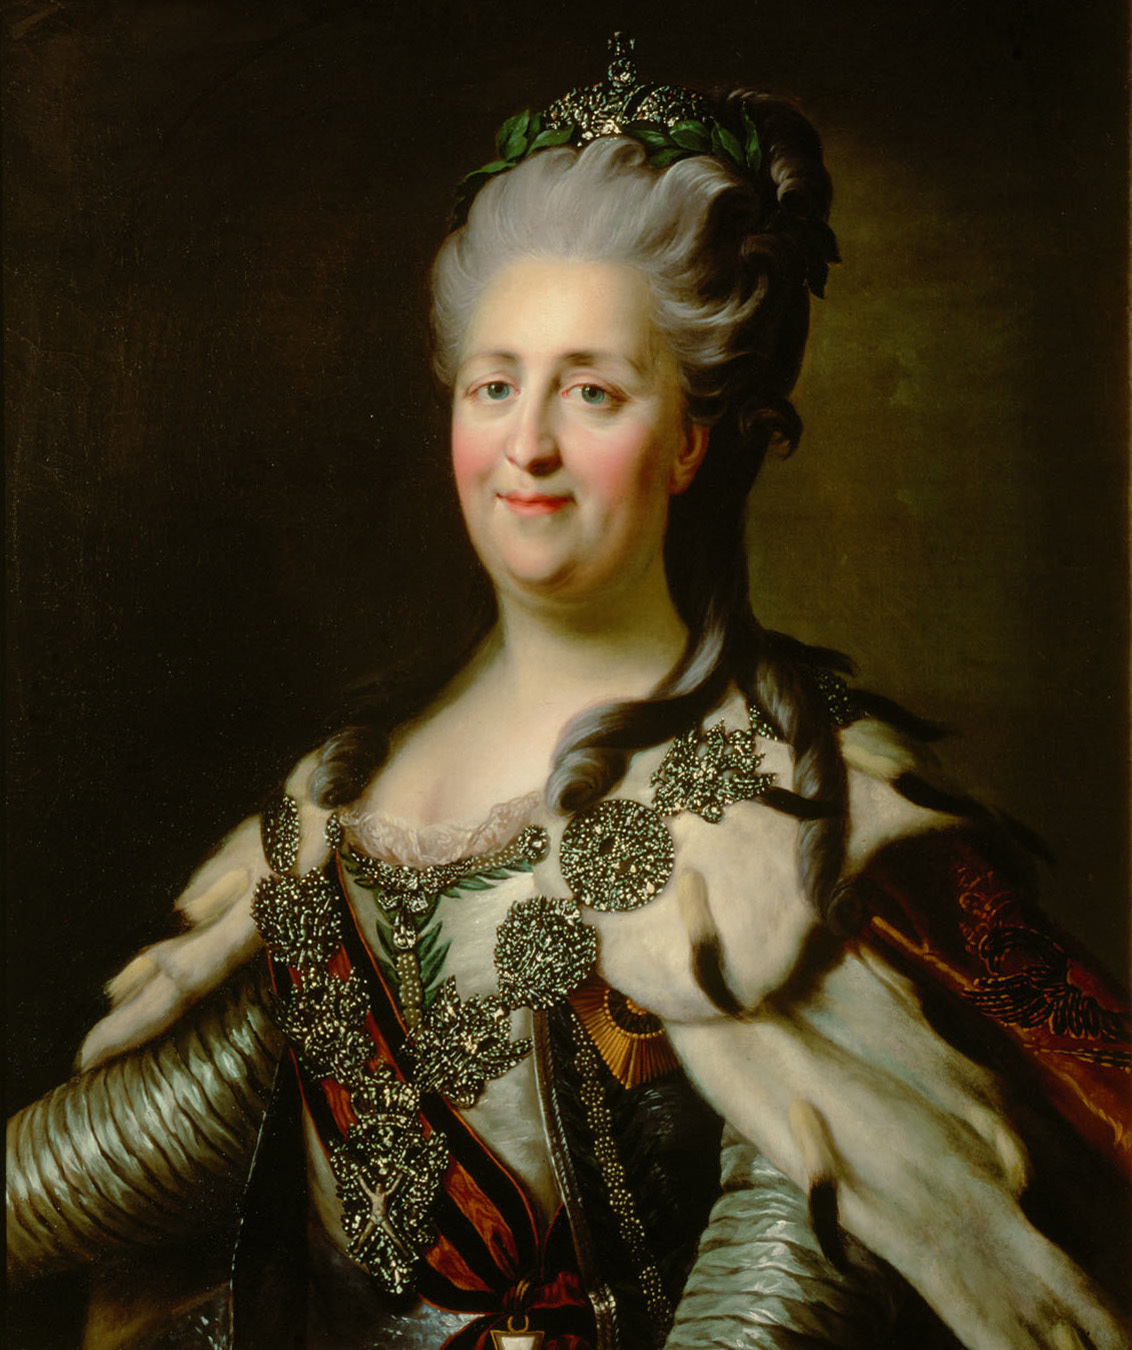 Catherine the Great, portrait of an ageing leader